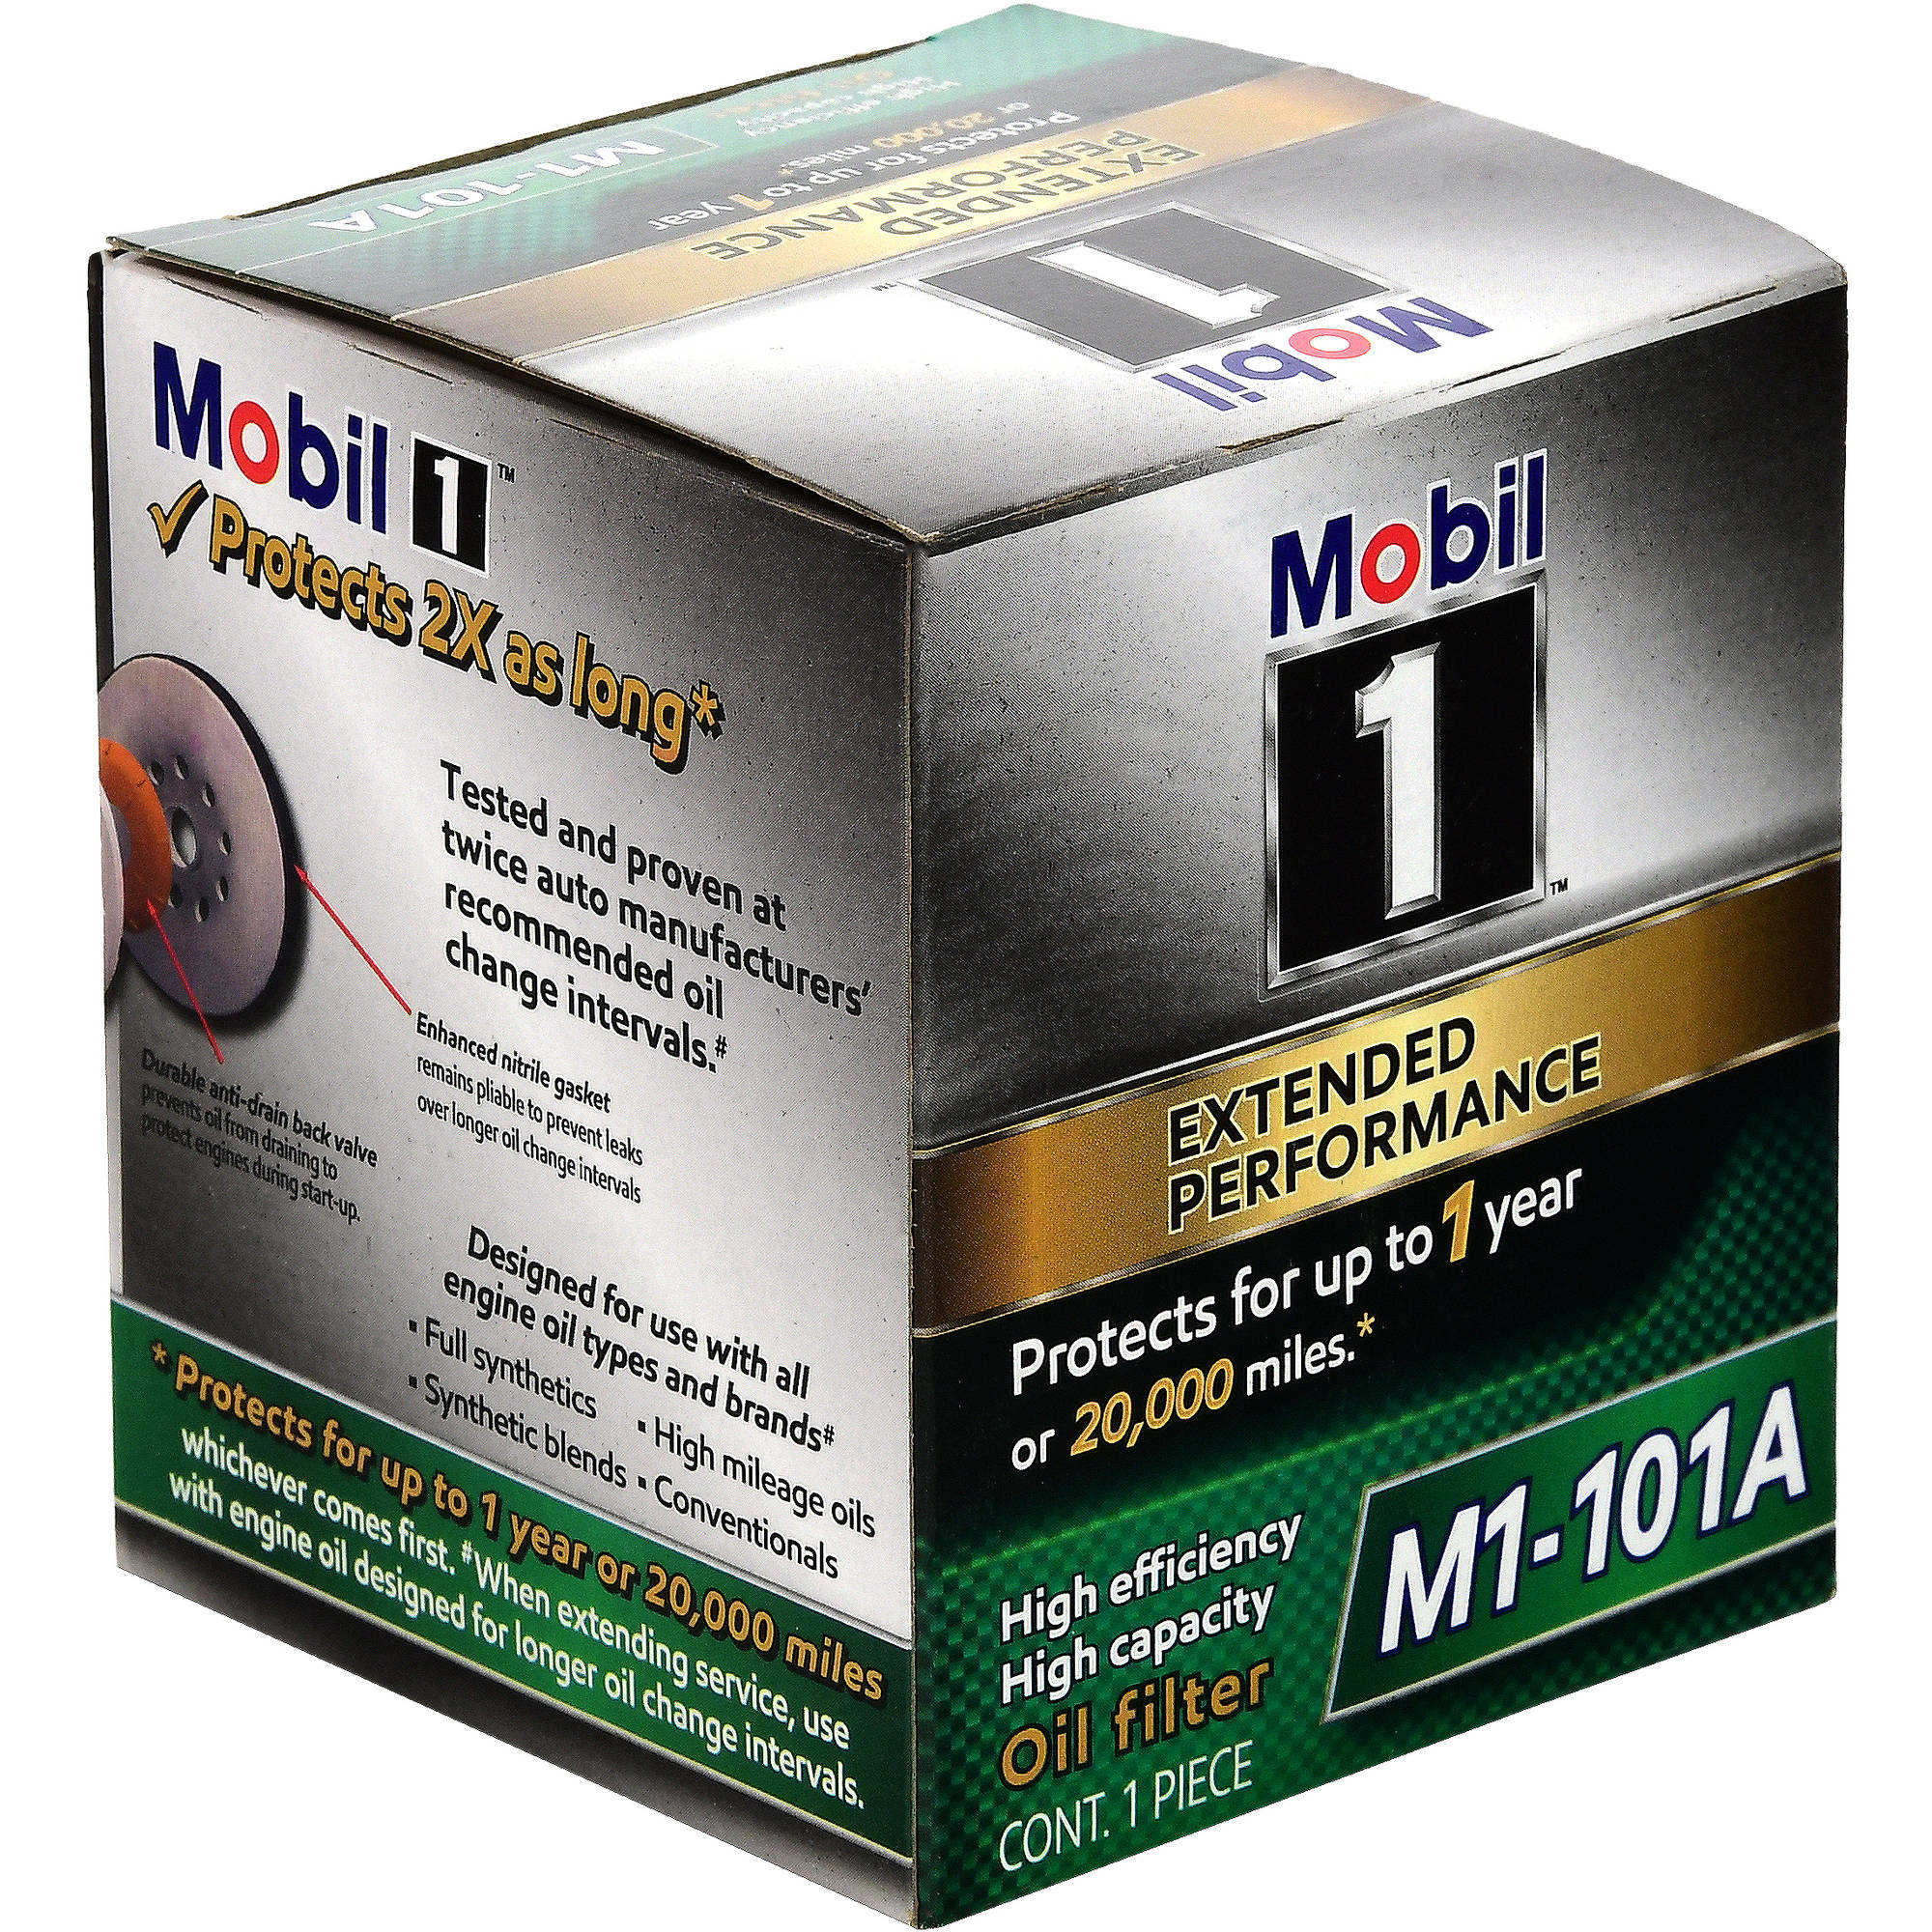 Mobil 1 Extended Performance Oil Filter, M1-101A, 1 count